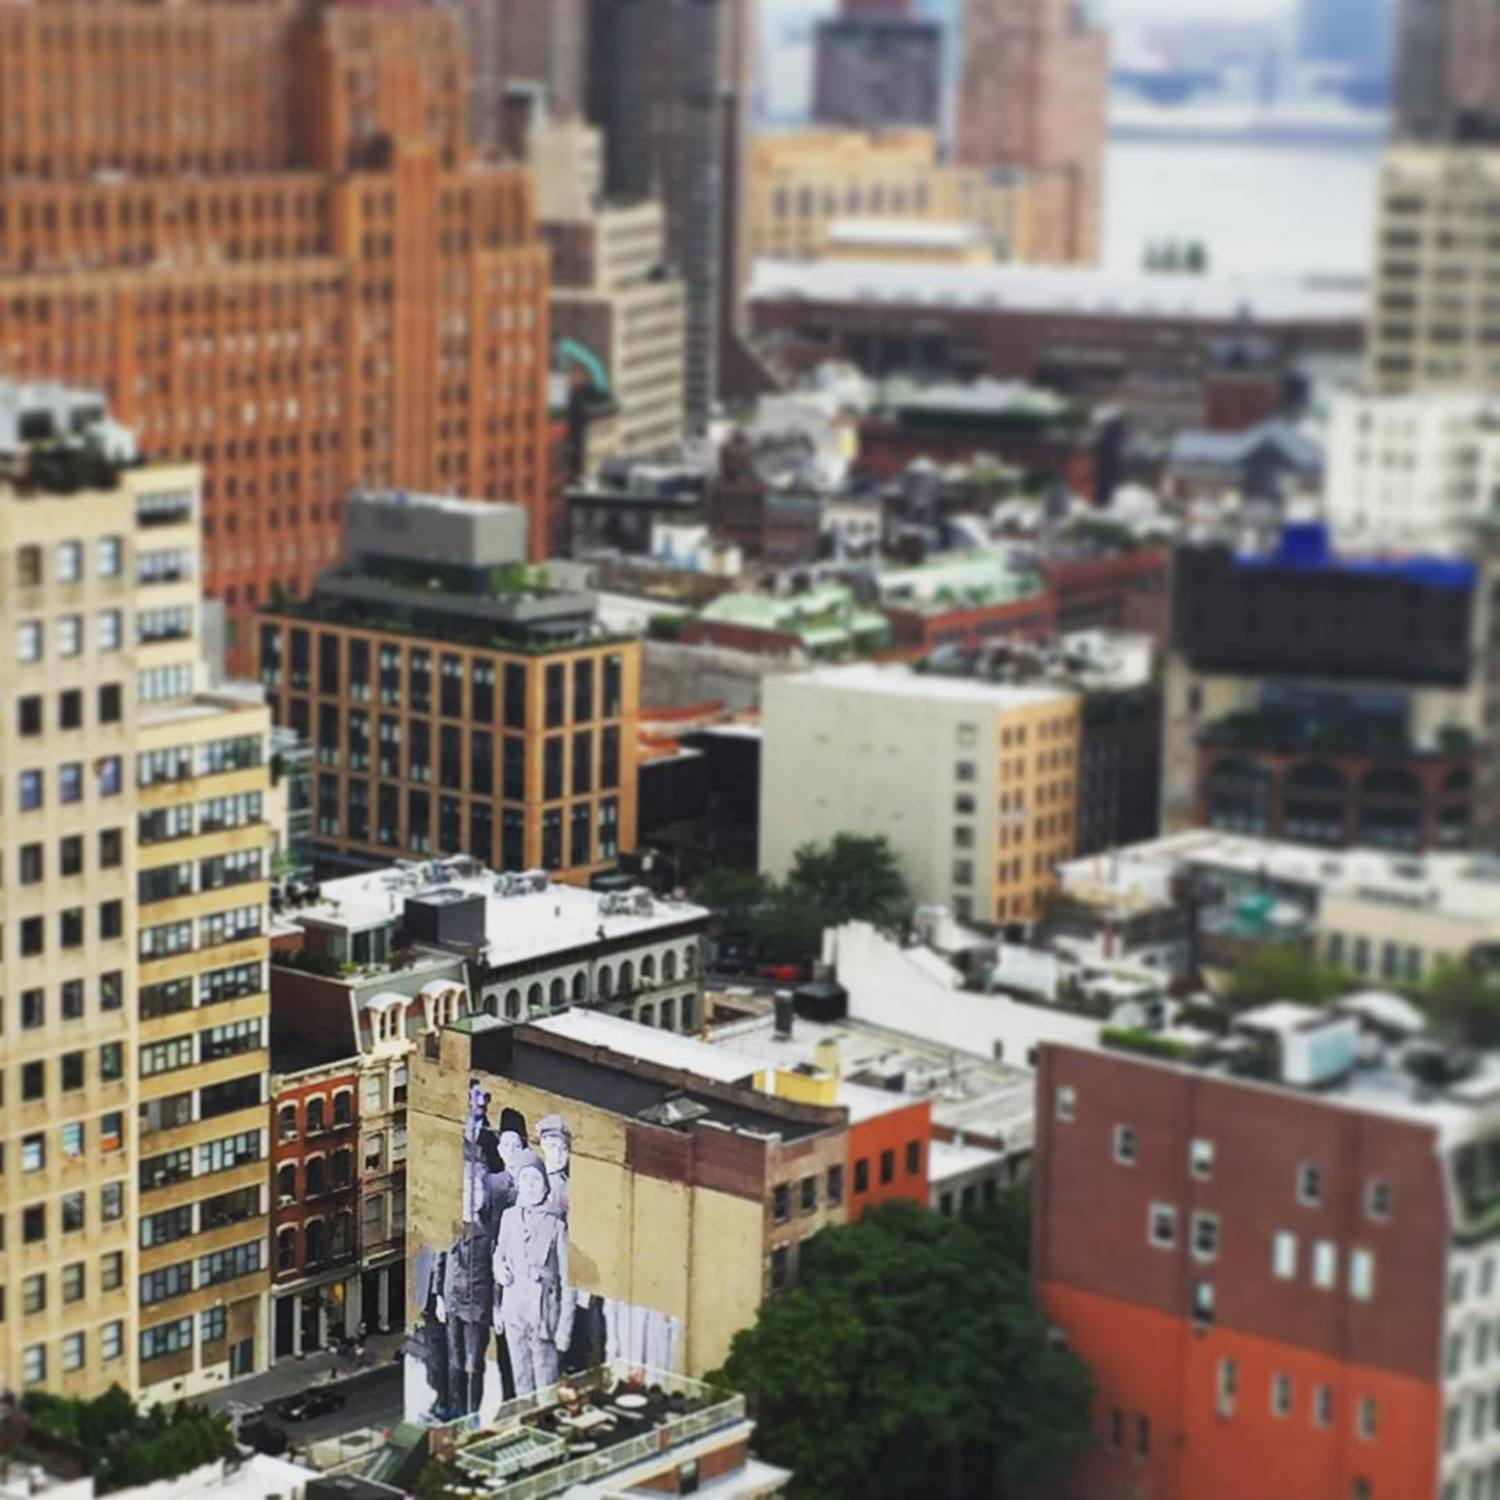 From our @artsy office I can see the new @JR mural up in #Tribeca. #EllisStory #WeAllComeFromSomewhere